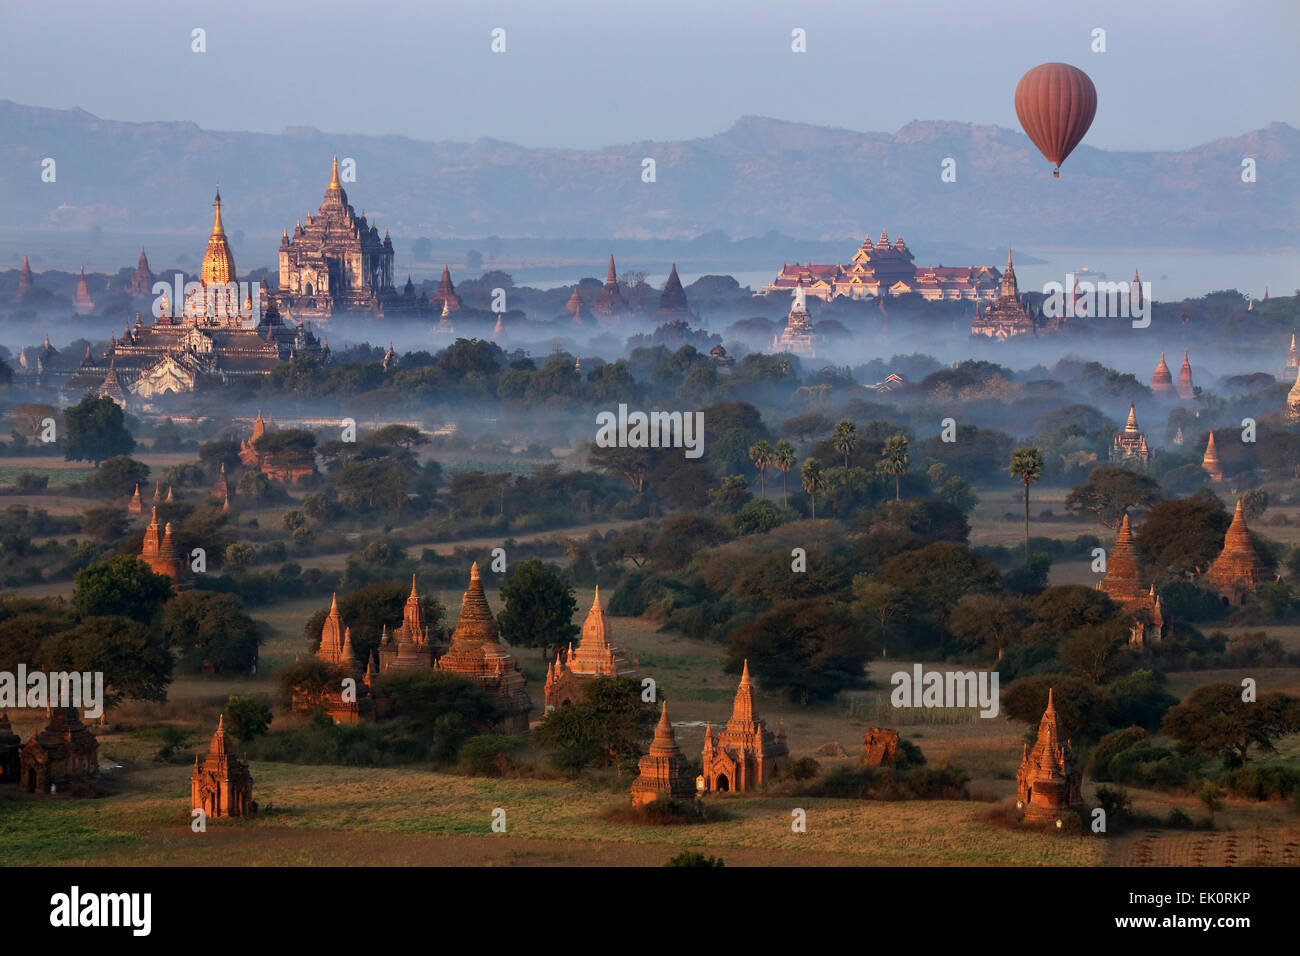 Early morning aerial view of the temples of the Archaeological Zone near the Irrawaddy River in Bagan in Myanmar Stock Photo